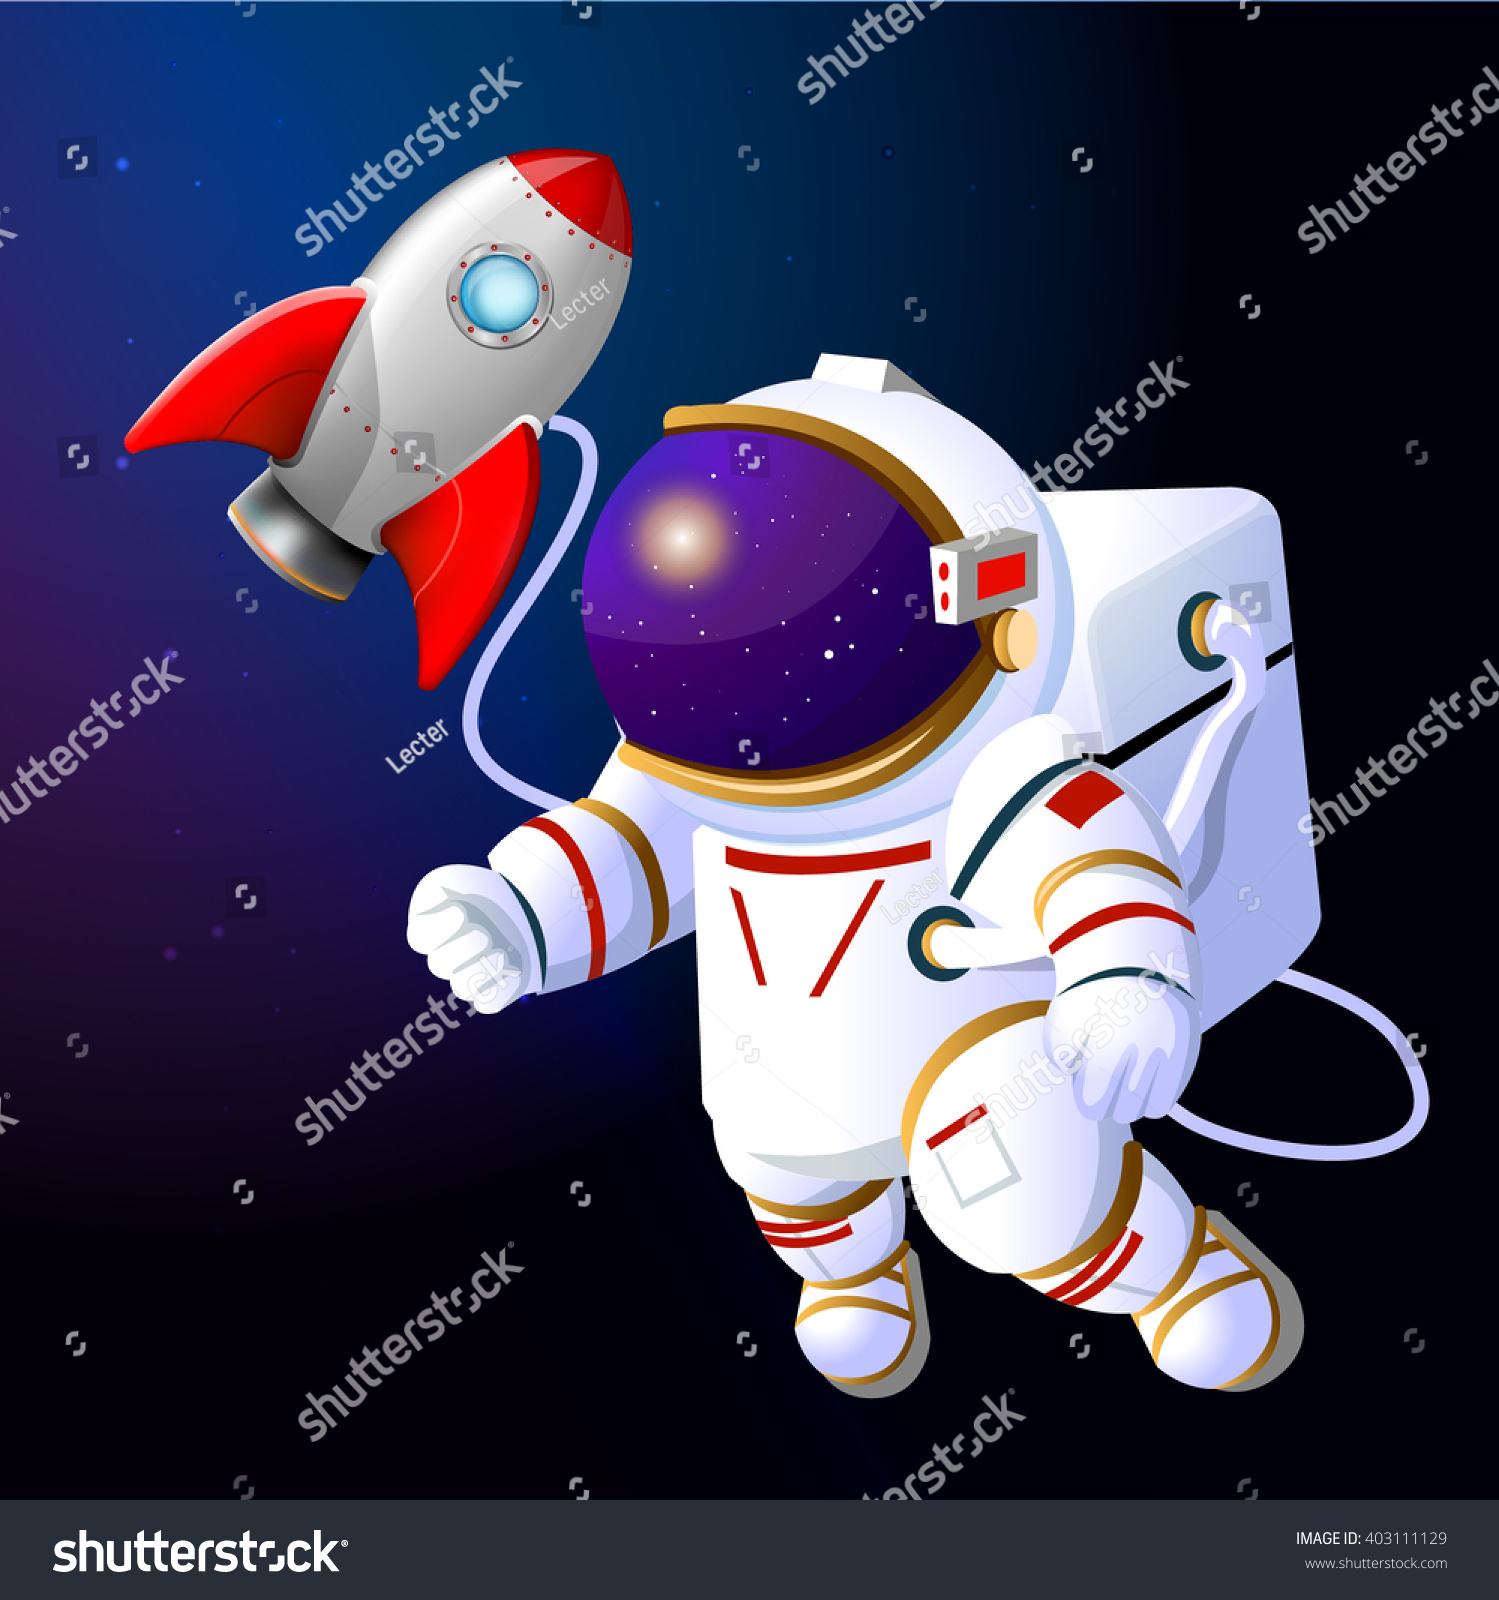 Astronaut Rocket Space Rocket Astronaut Cartoon Stock Vector HD ...